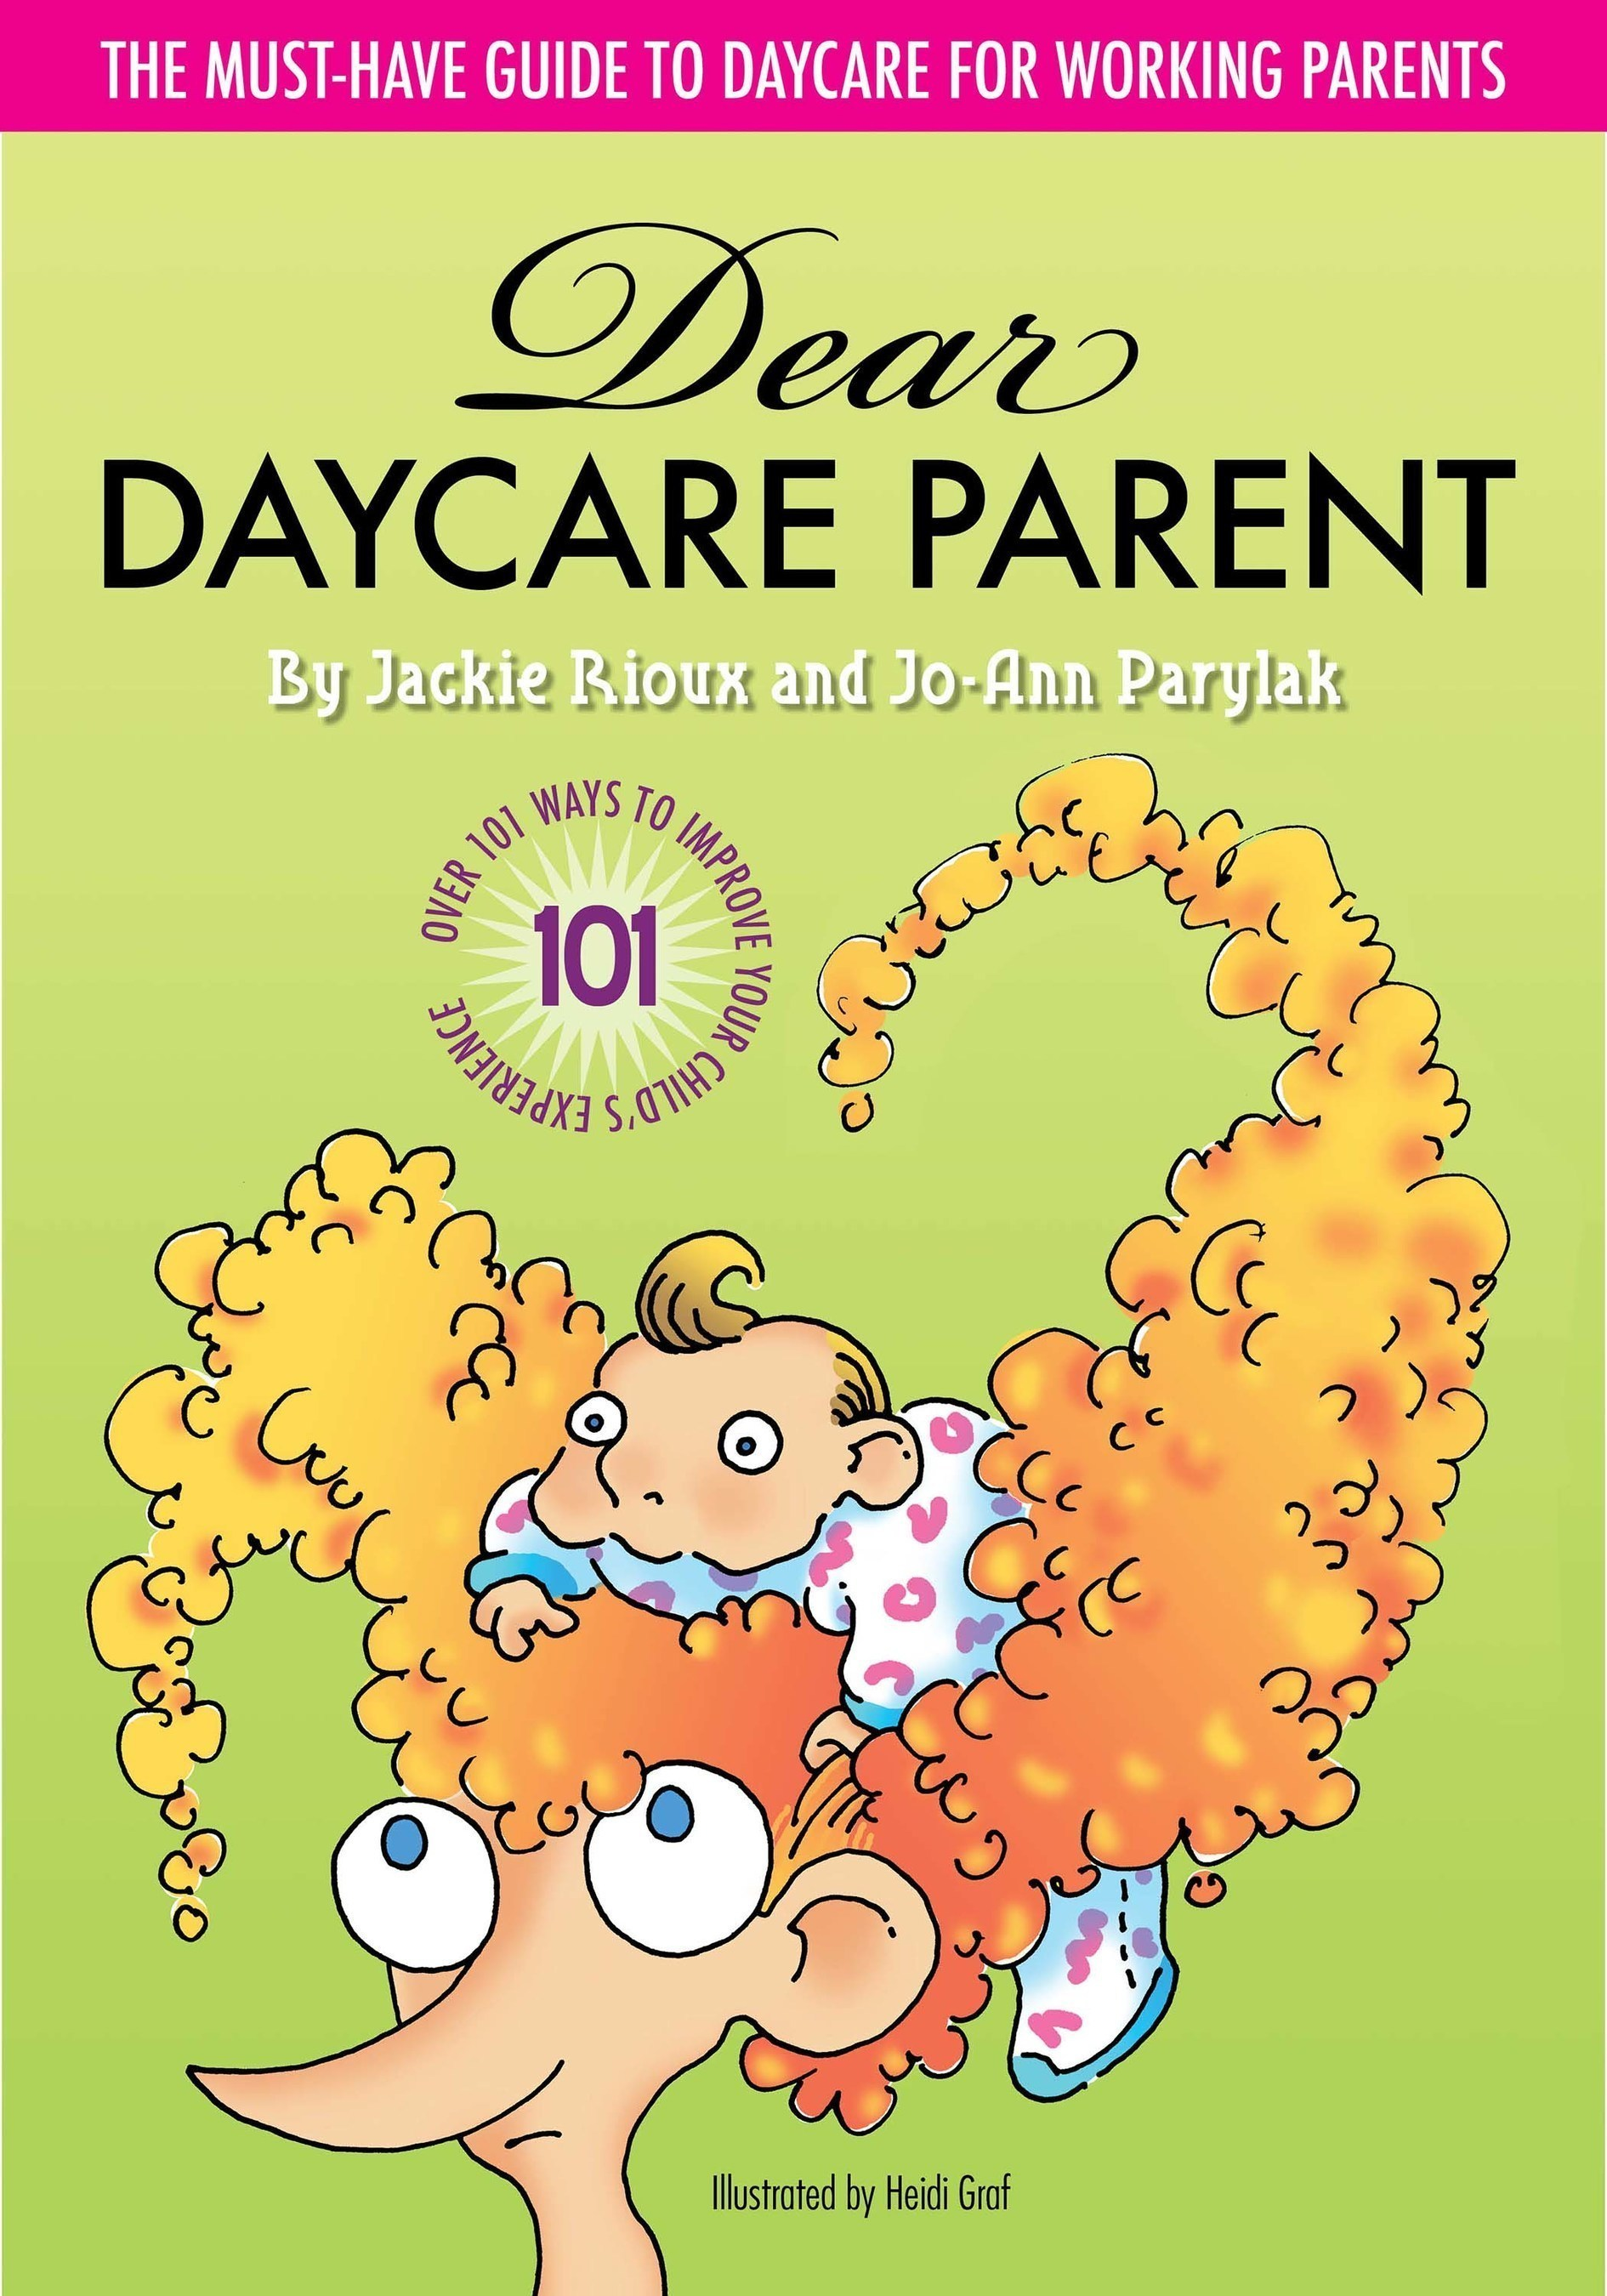 Daycare Pros Author Book for Working Parents